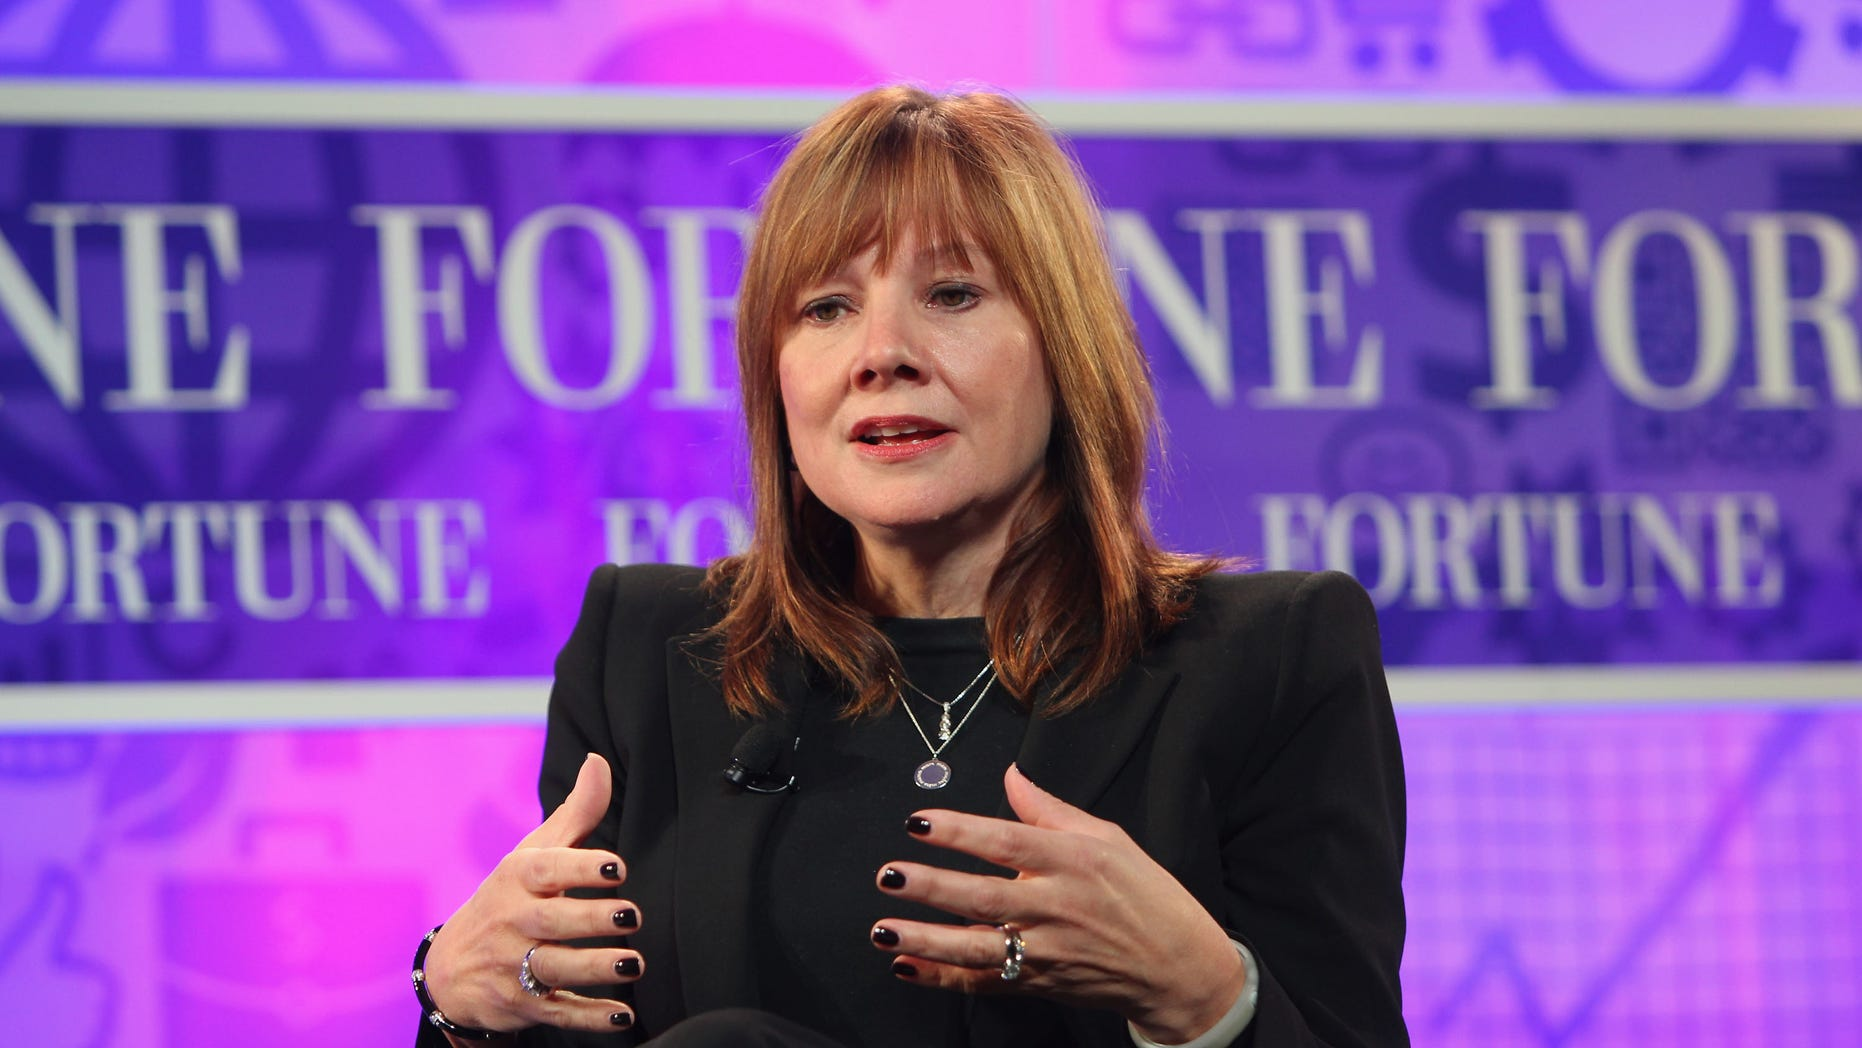 Mary Barra at the FORTUNE Most Powerful Women Summit on October 16, 2013 in Washington, DC.